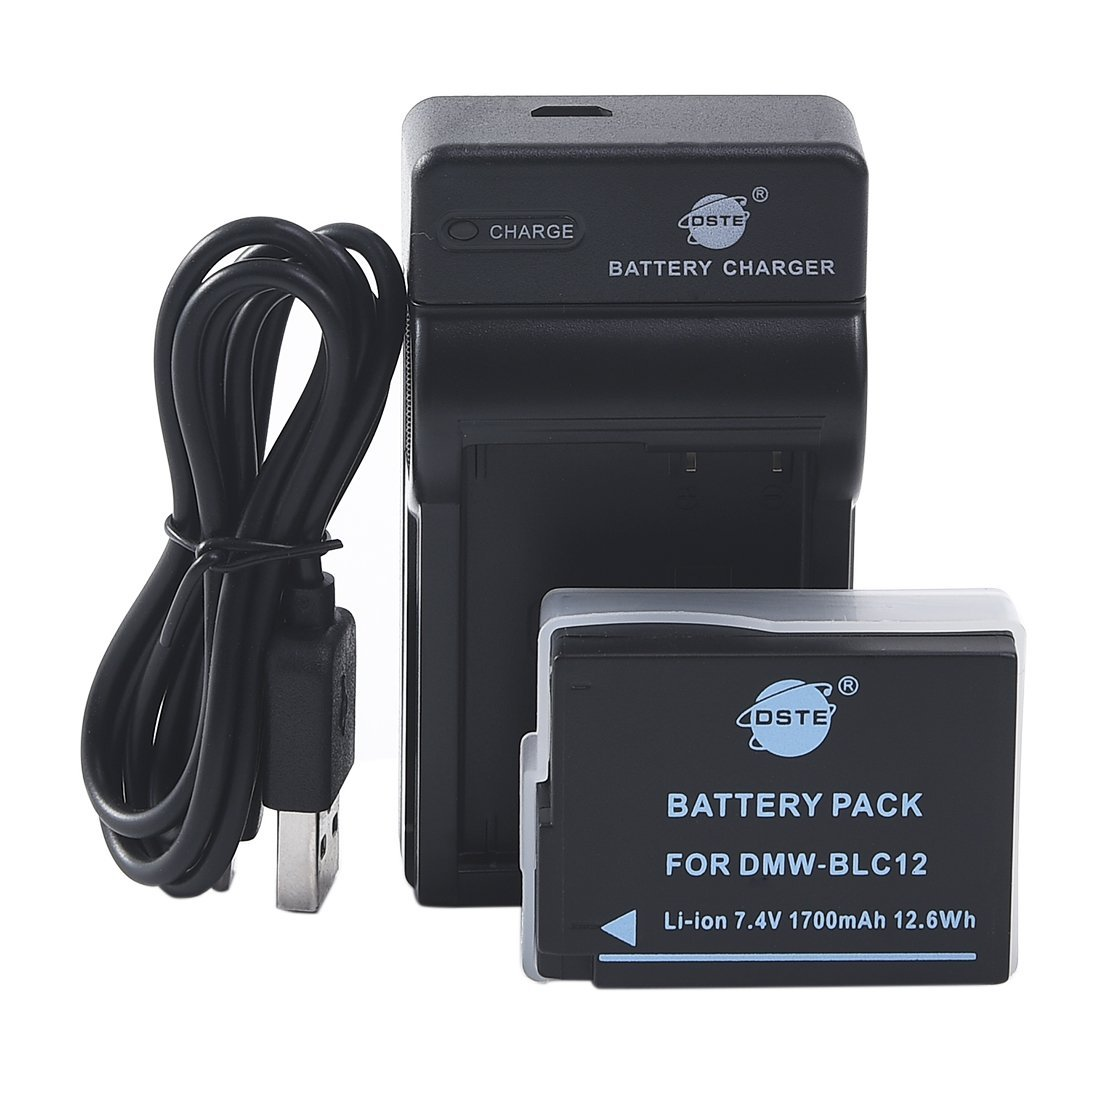 DSTE DMW-BLC12E Li-ion Battery and Micro USB Charger Suit for Panasonic Lumix DMC-G5 DMC-G6 DMC-G7 DMC-GH2 DMC-FZ200 DMC-FZ200GK DMC-FZ1000